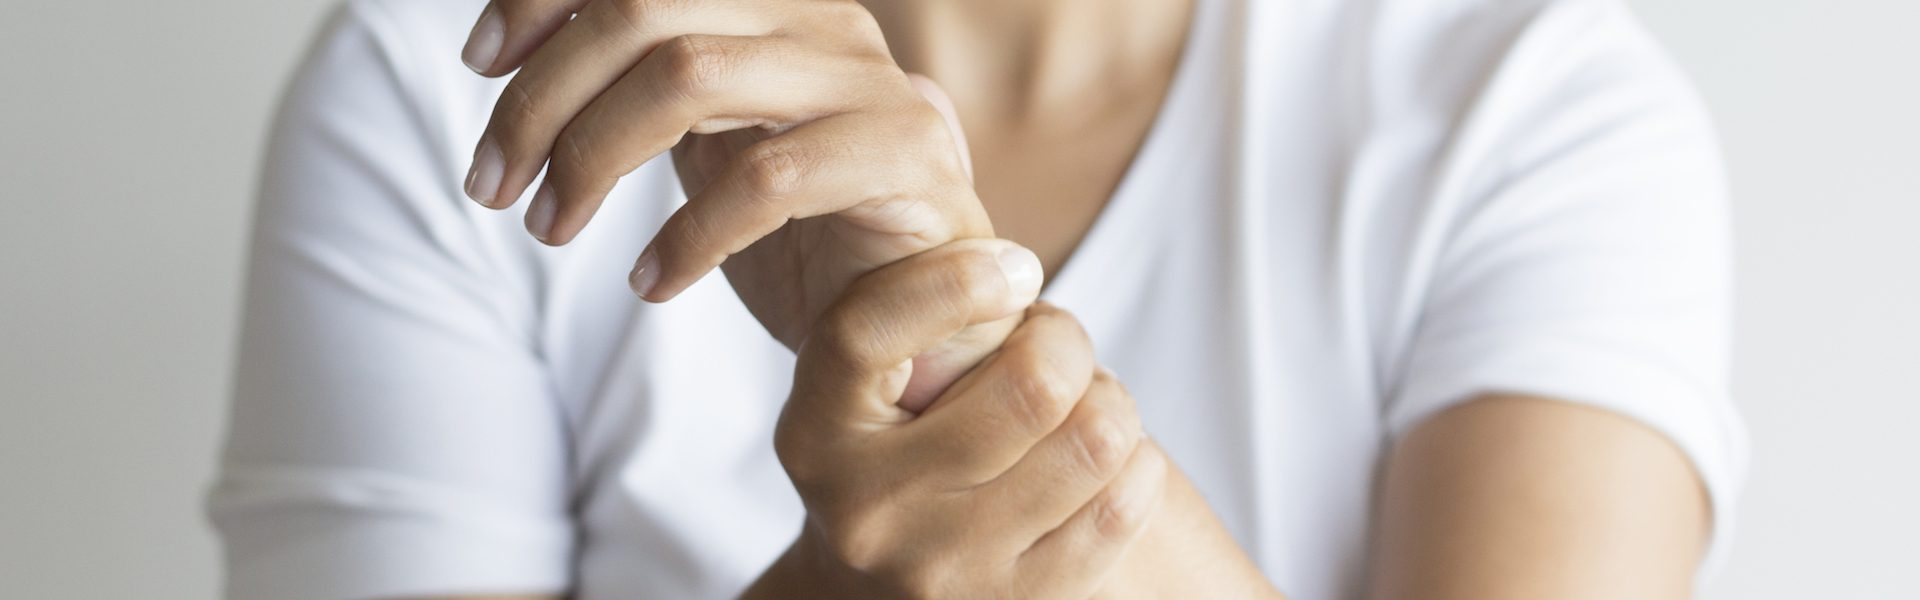 preventing carpal tunnel syndrome exercises from mercy health